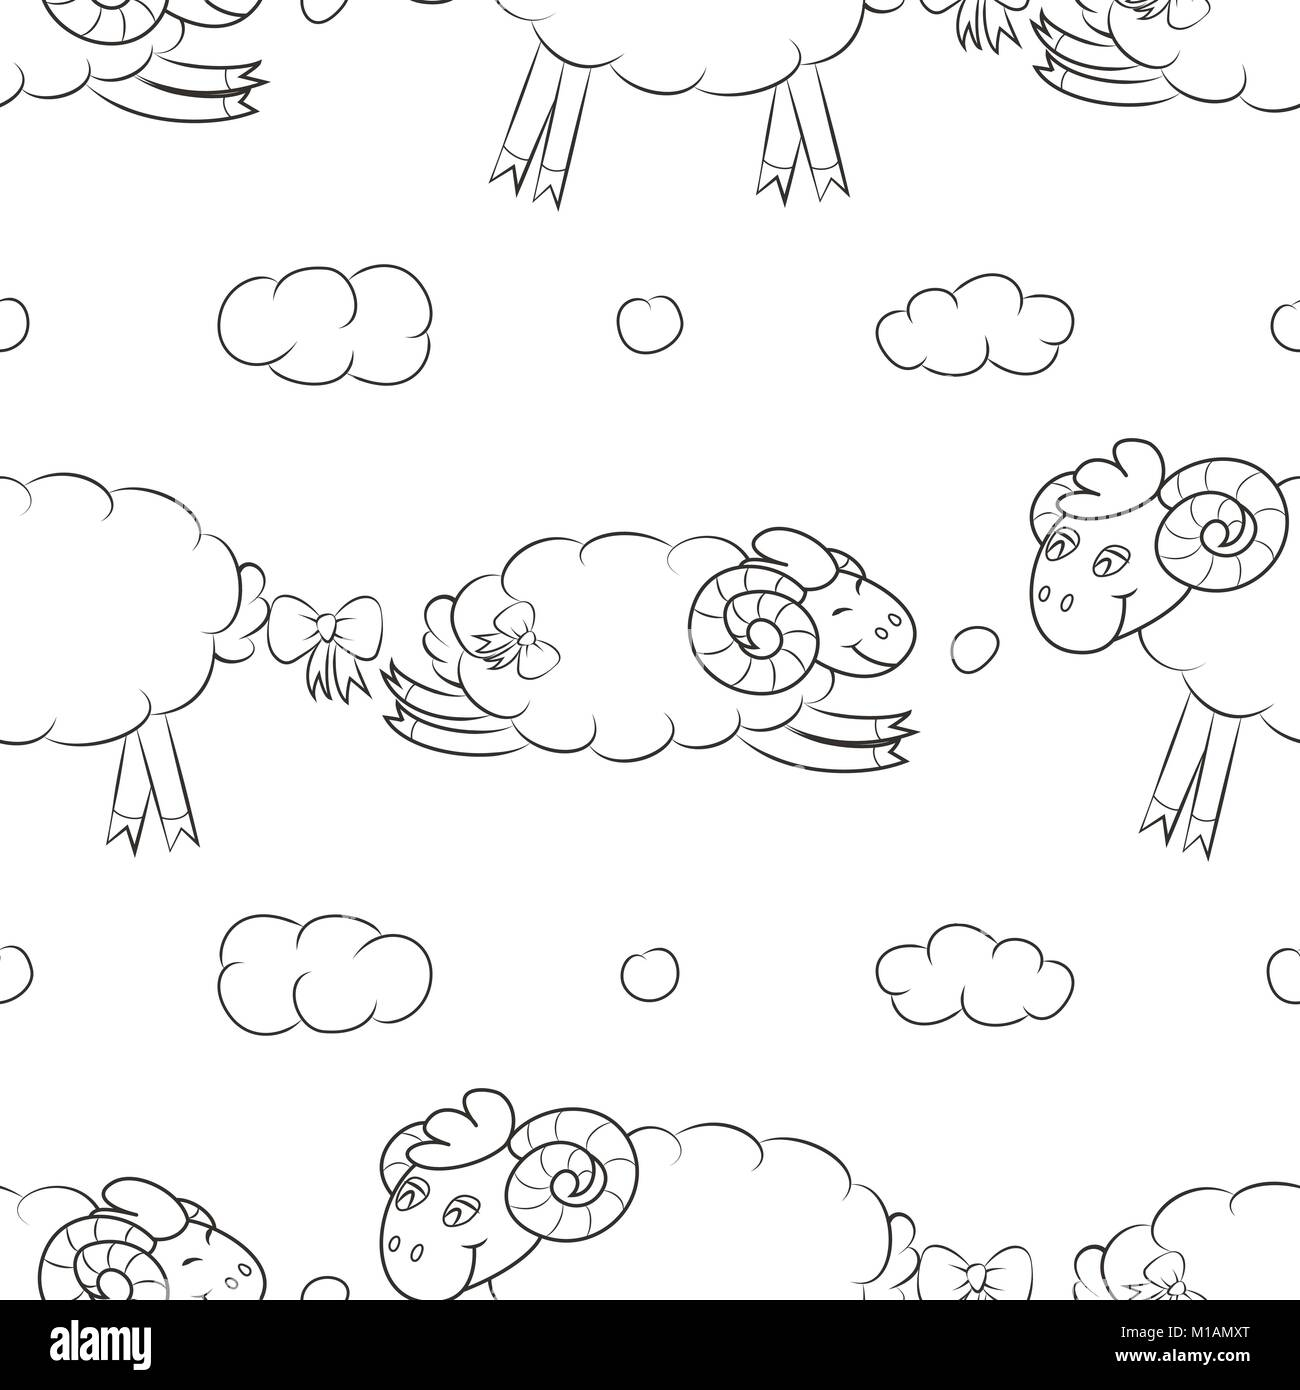 Funny sheep flying in the clouds. - Stock Image